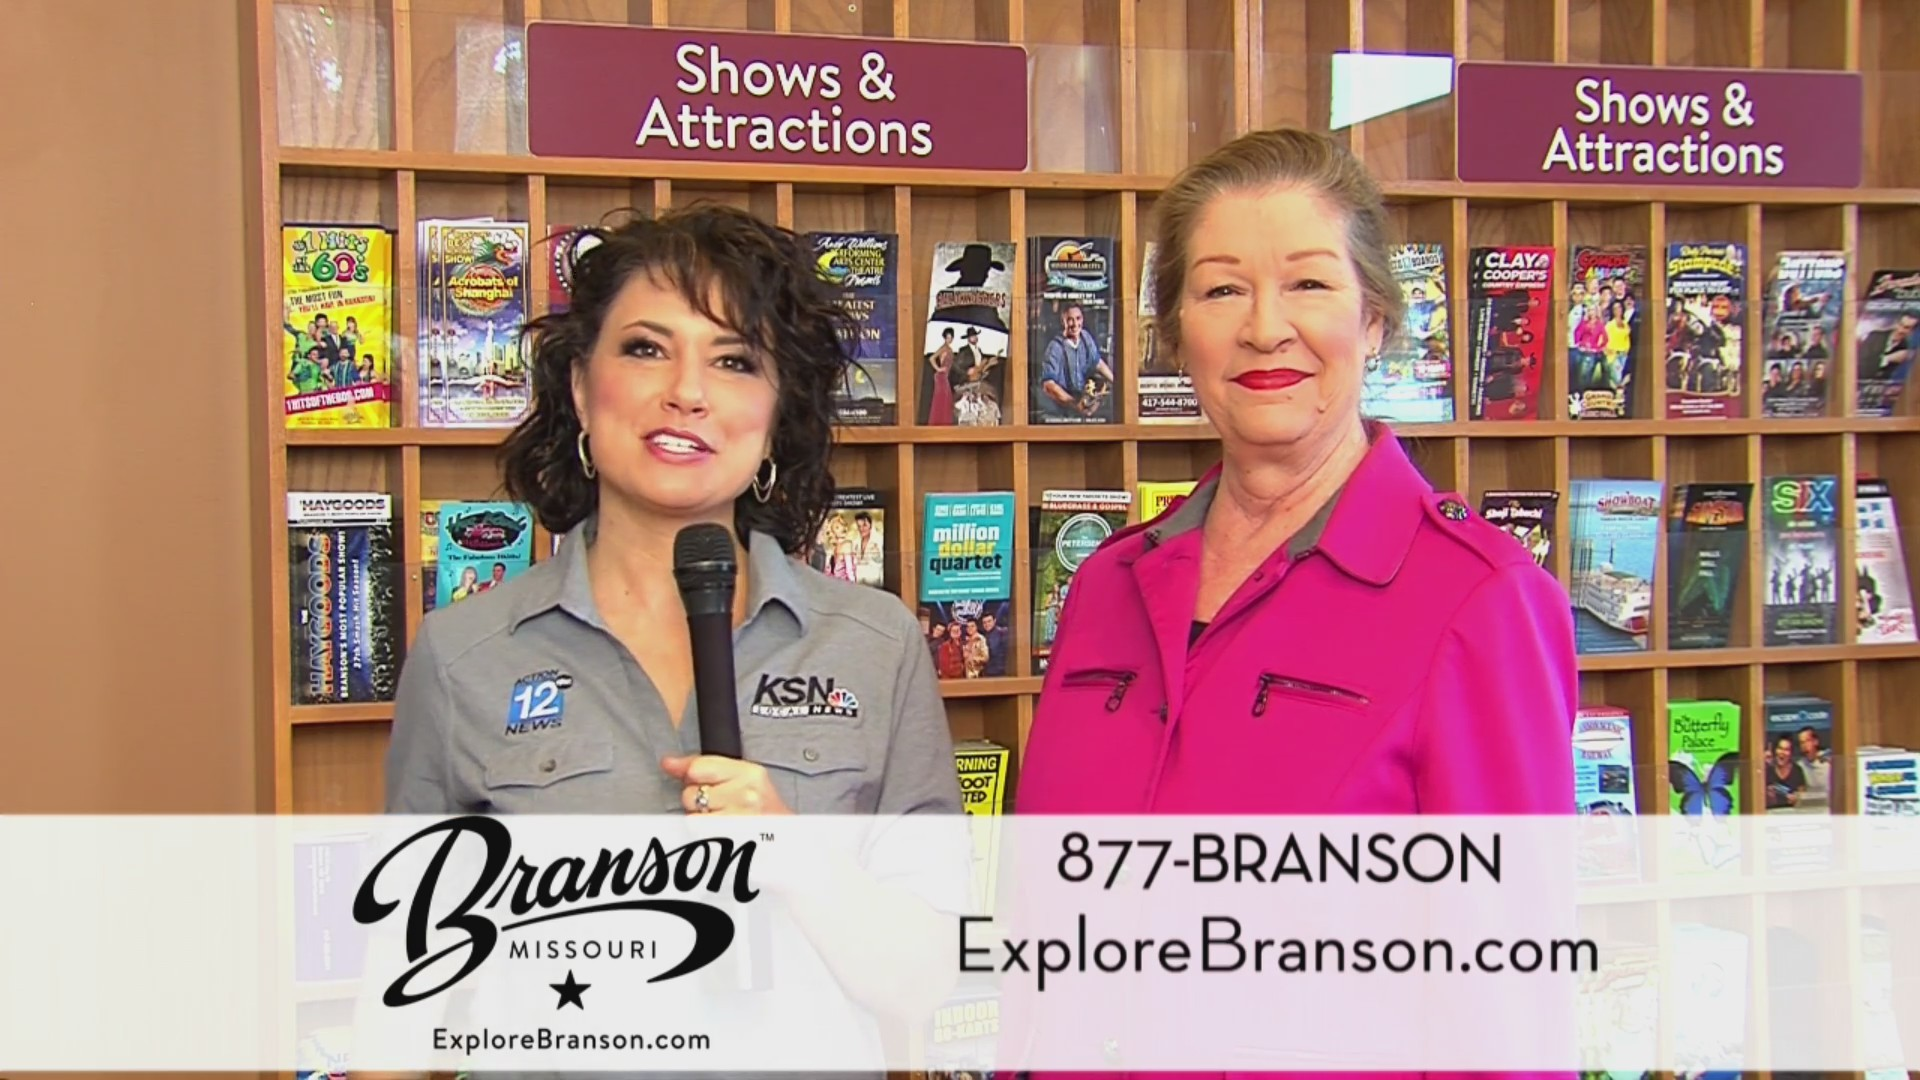 Branson Chamber of Commerce - What's Happening (032519)